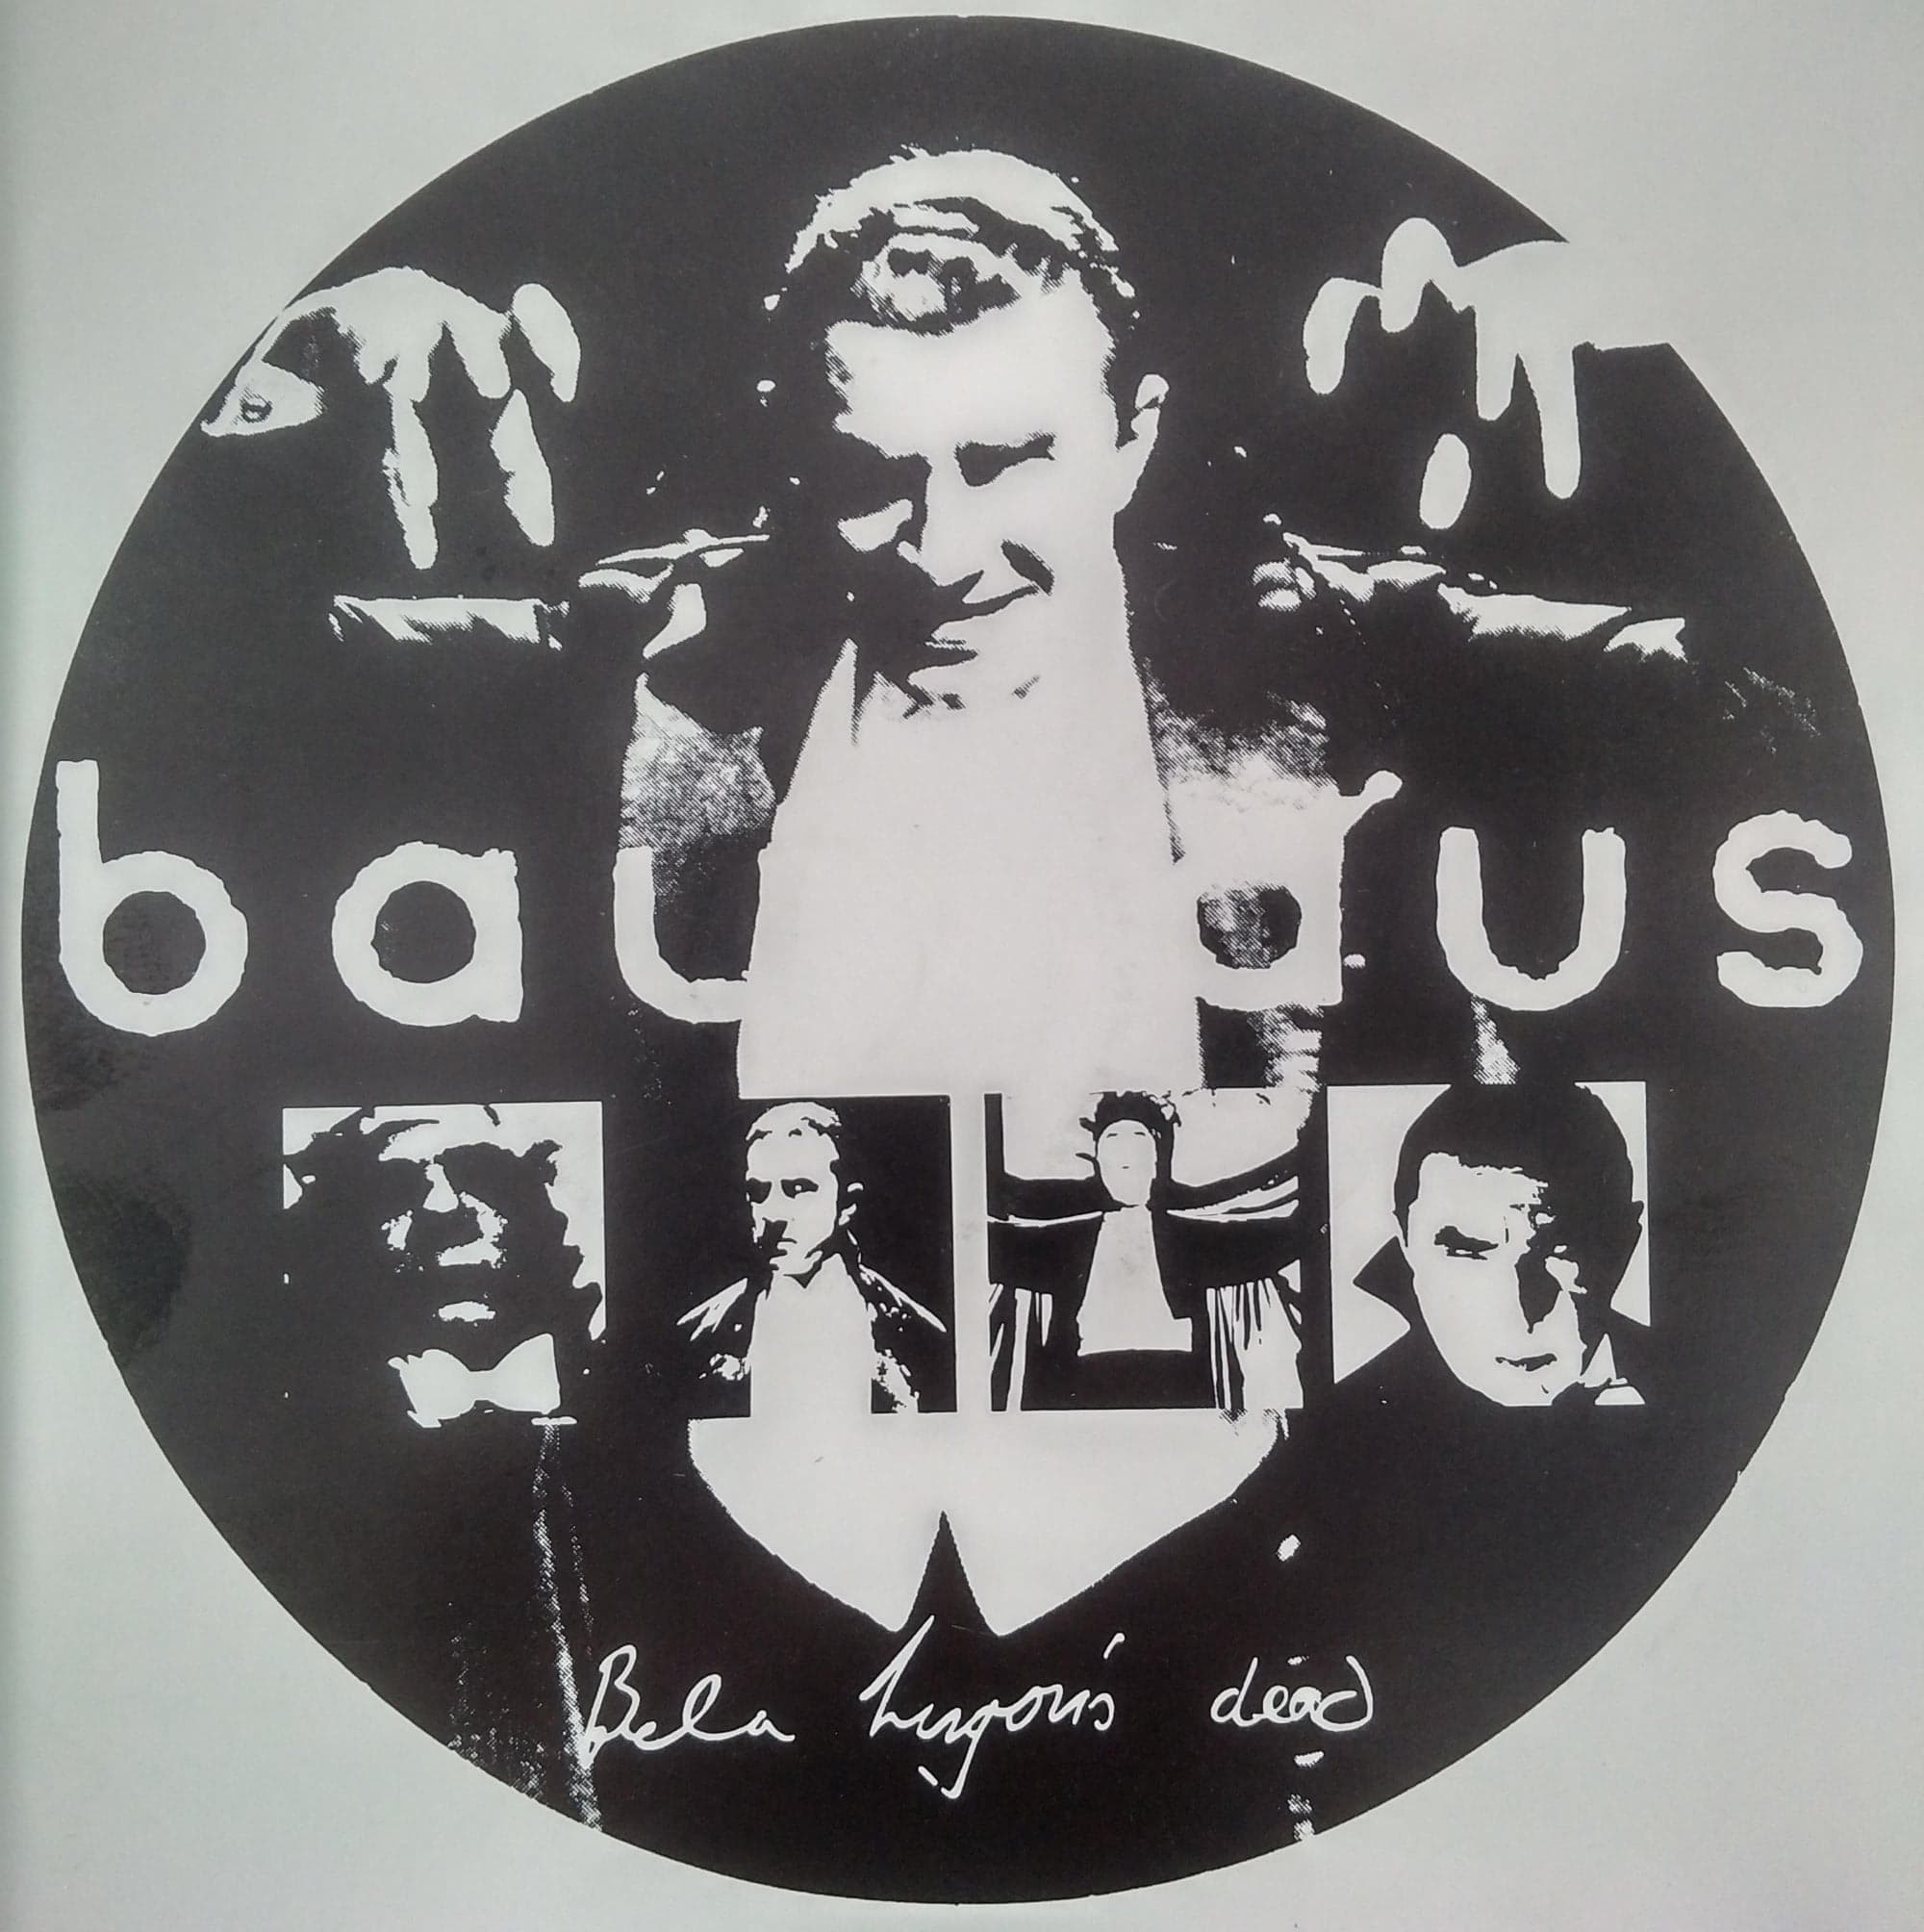 ELITE 8: (11) THE CREATURES 138, (1) Bauhaus 133 — March Badness